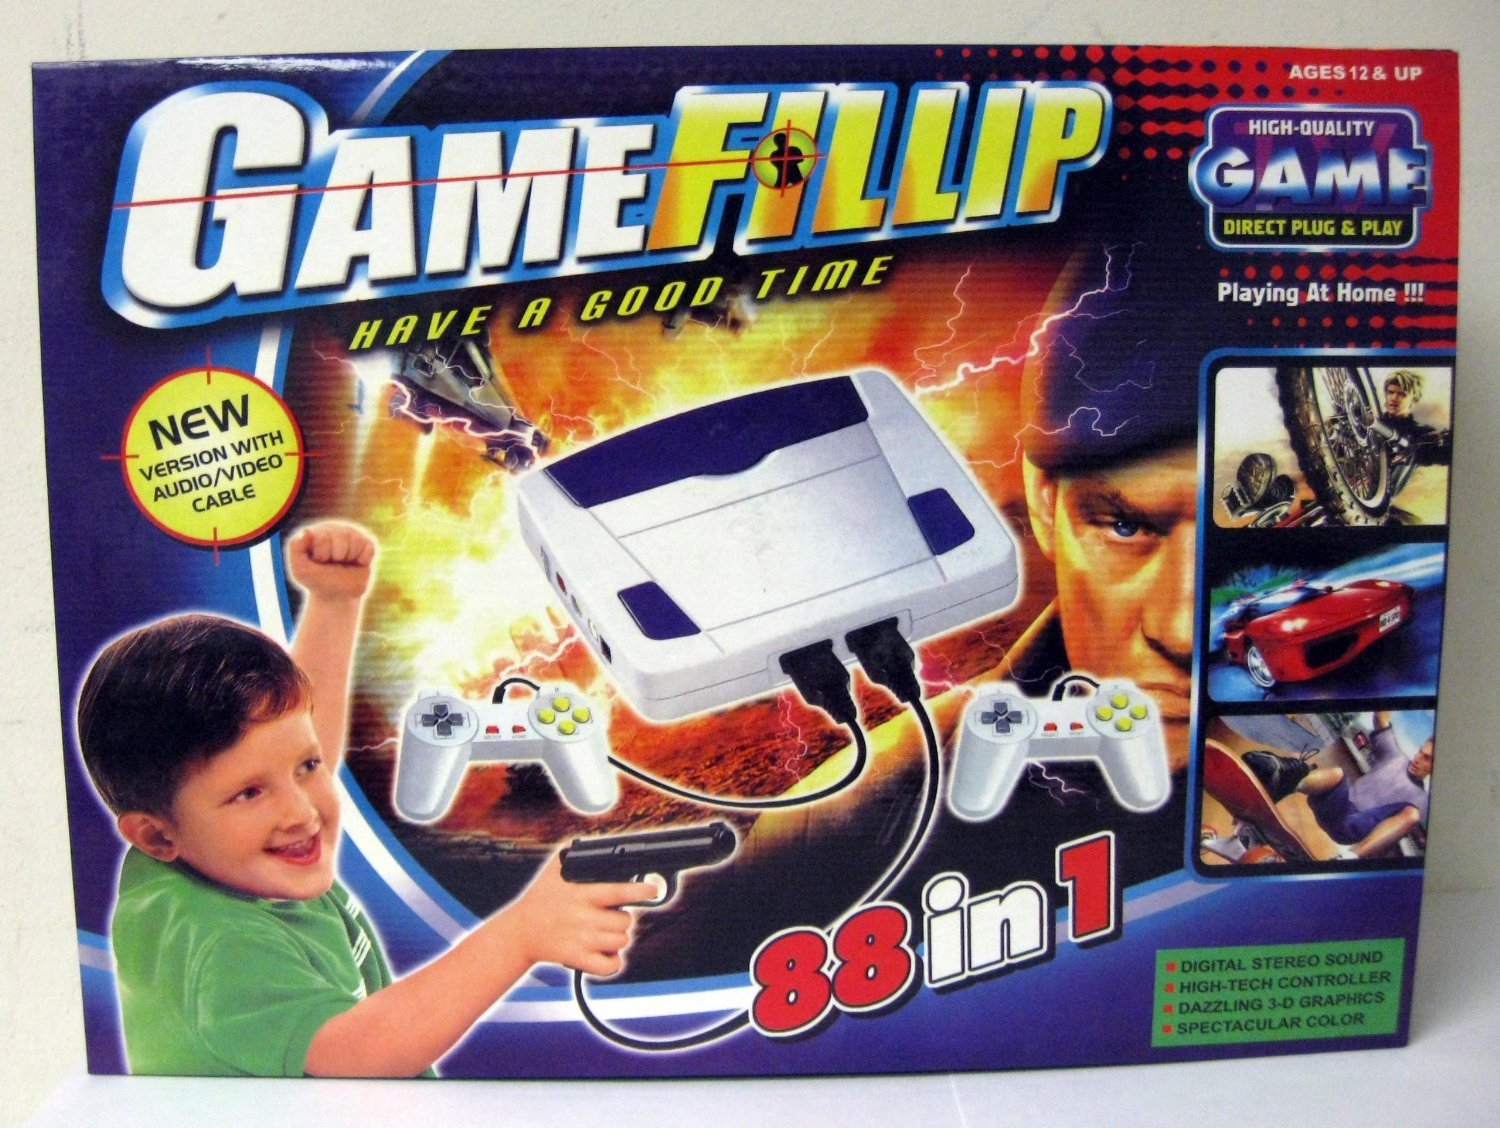 Finally! A game system for me!